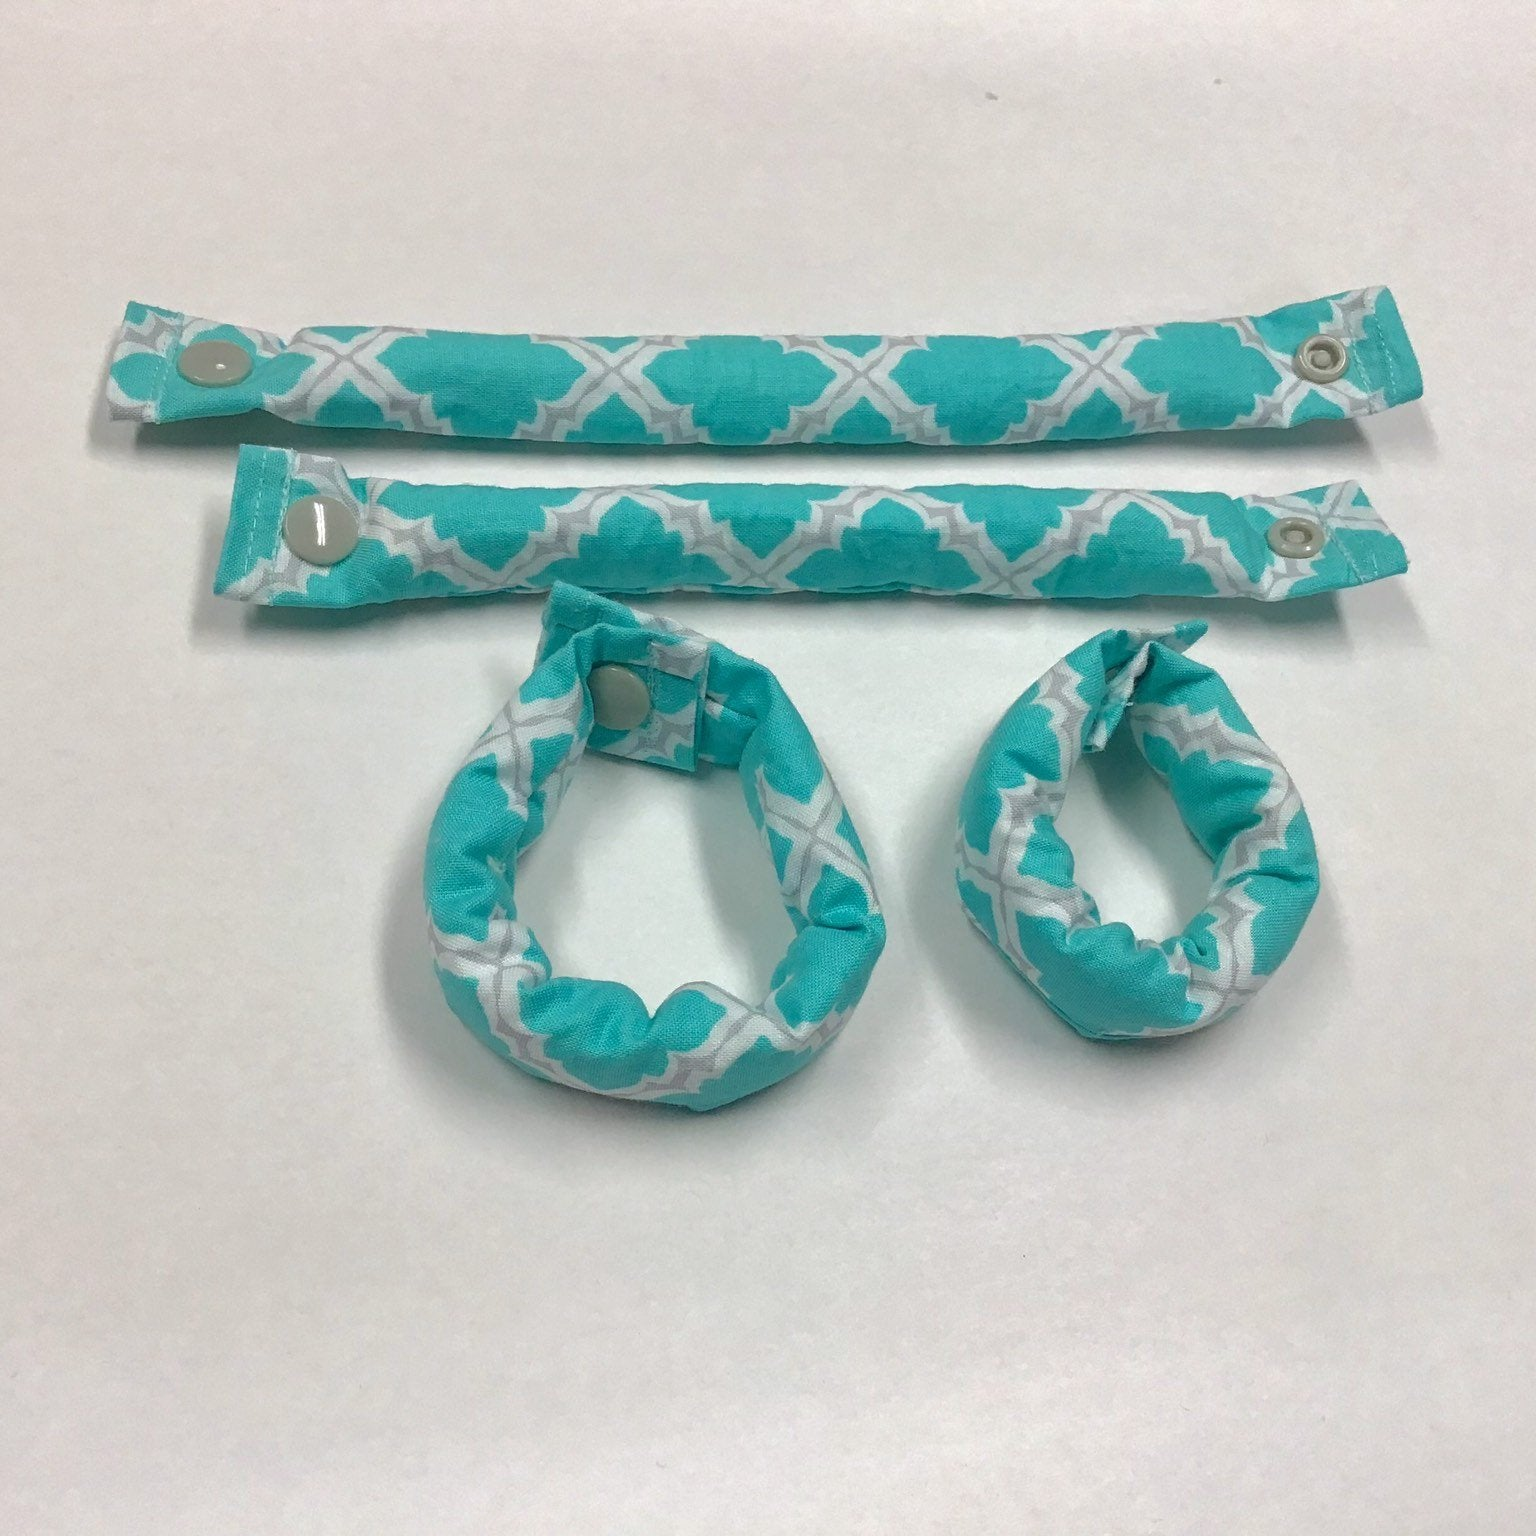 Aqua, White and Grey fabric hair rollers/Hair Curlers/Hair Accessories - My Easy Curls